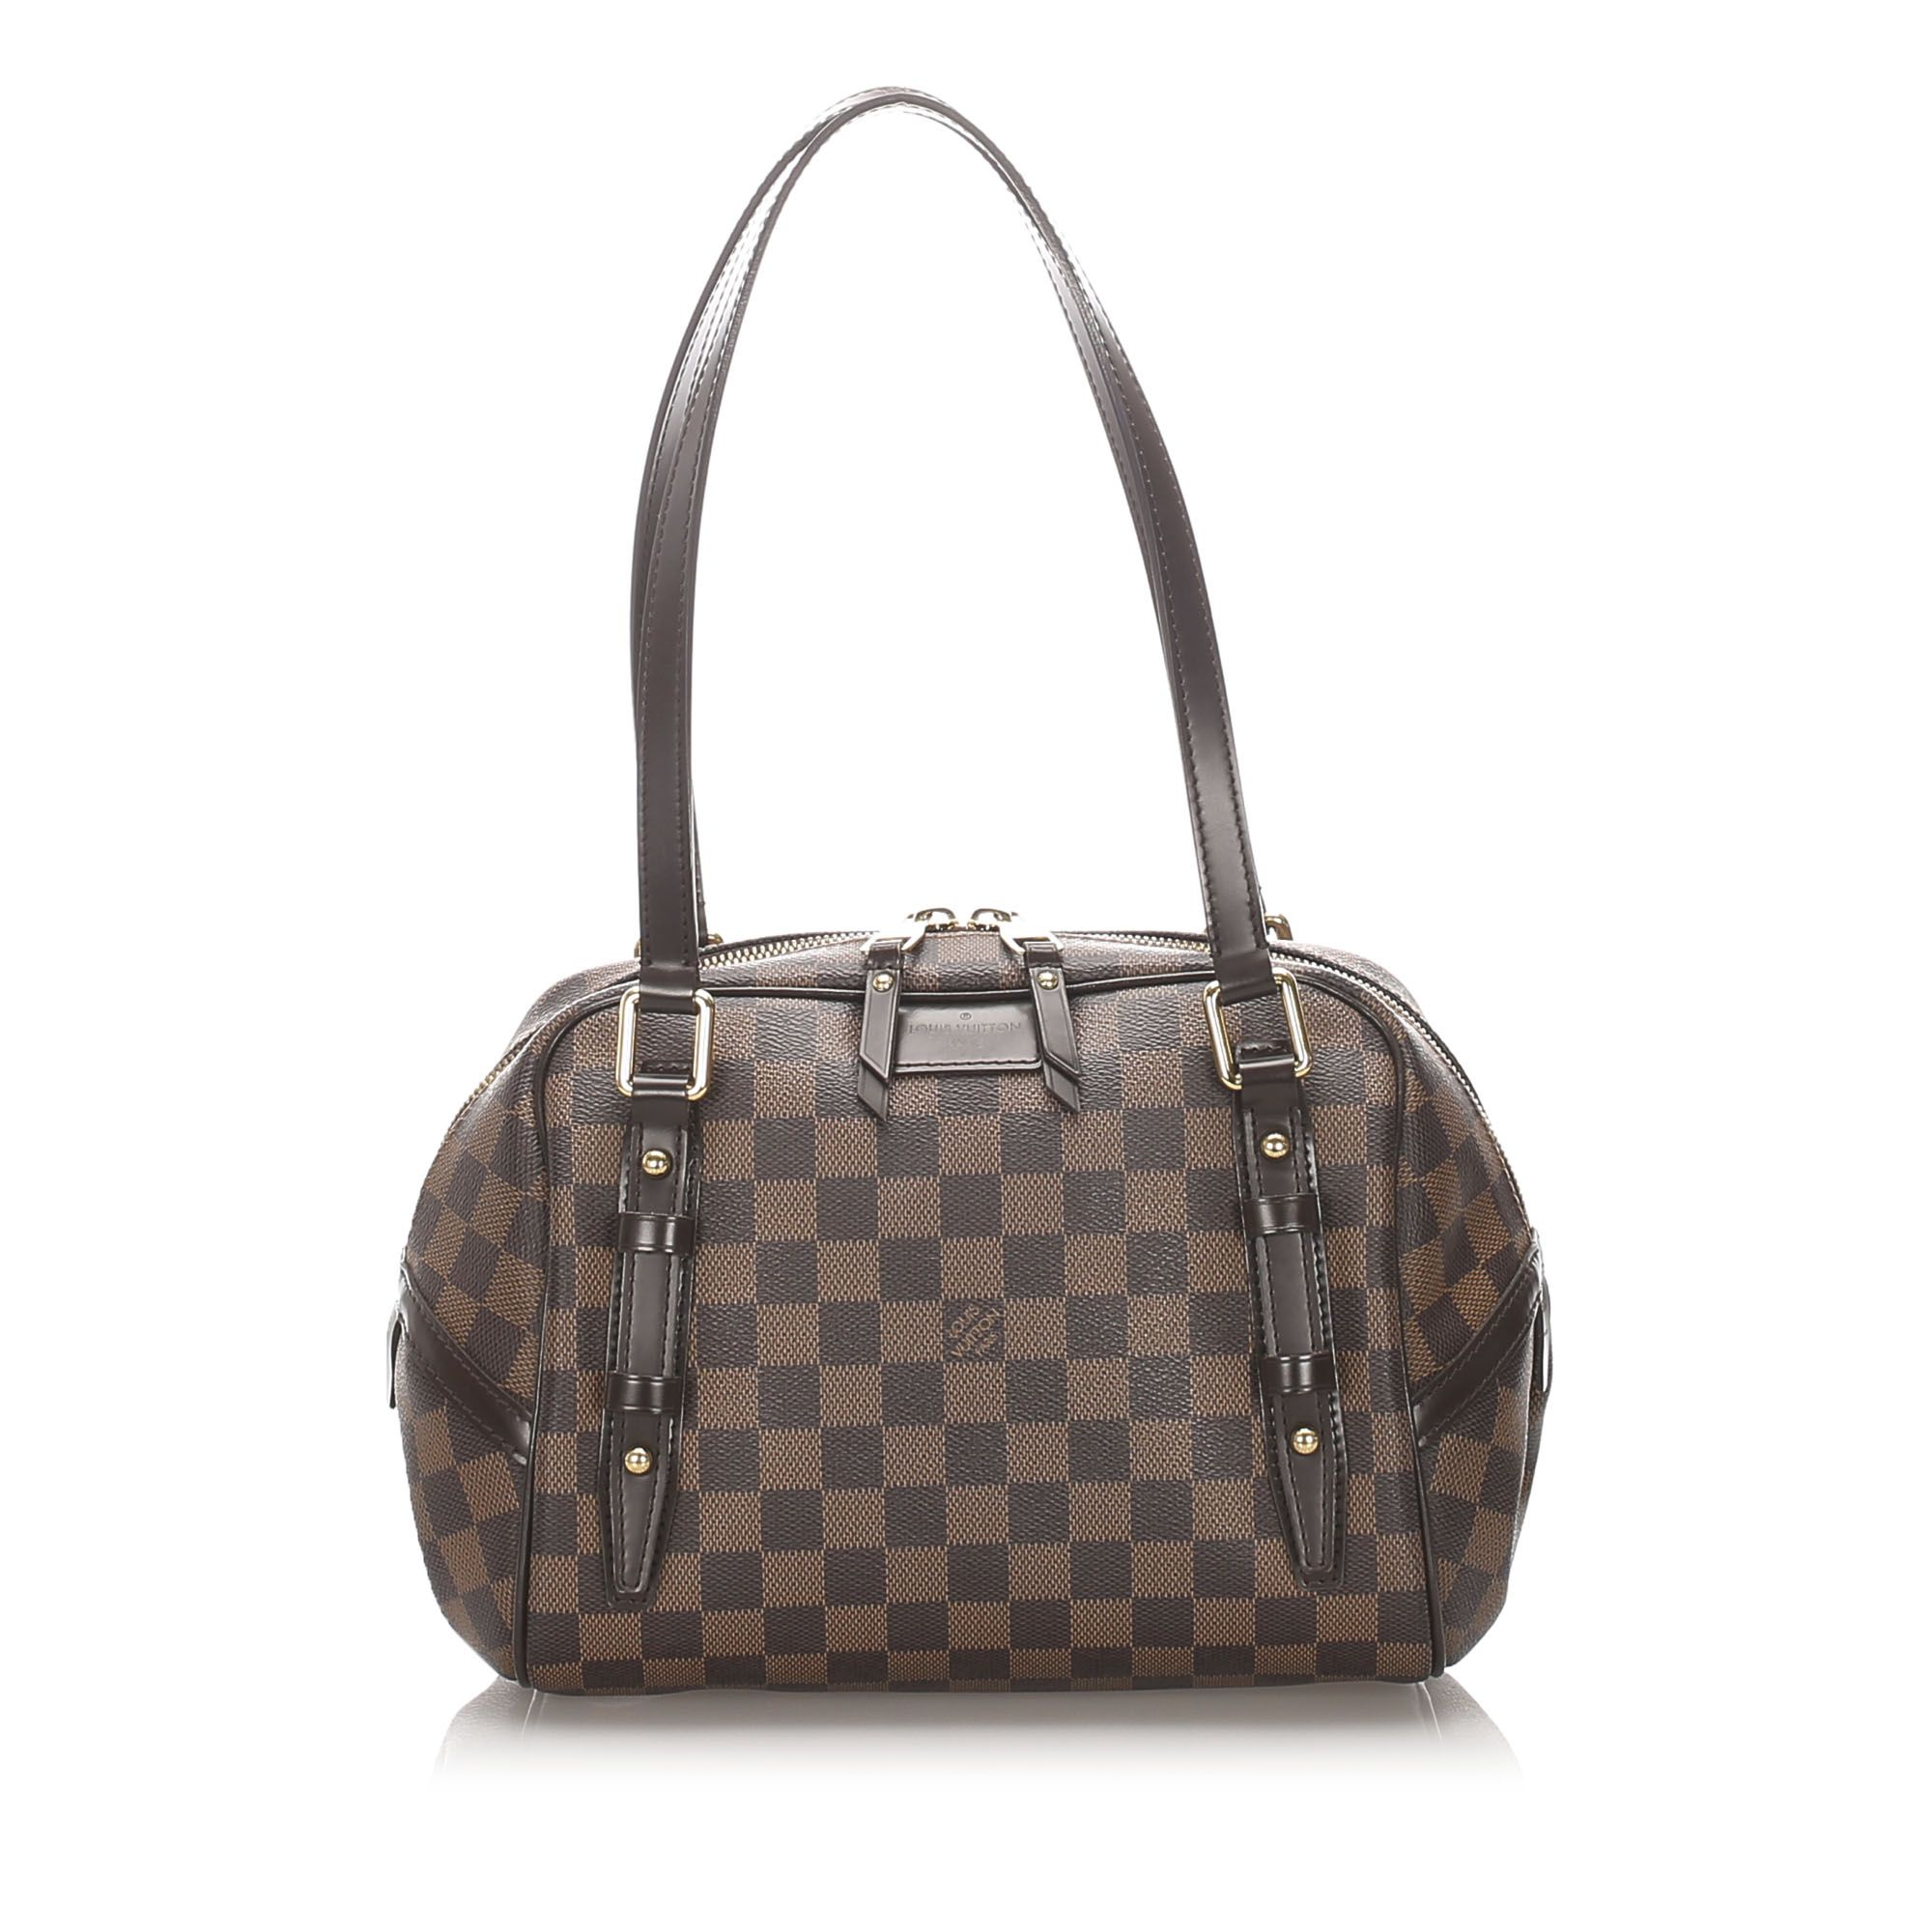 Vintage Louis Vuitton Damier Ebene Rivington PM Brown